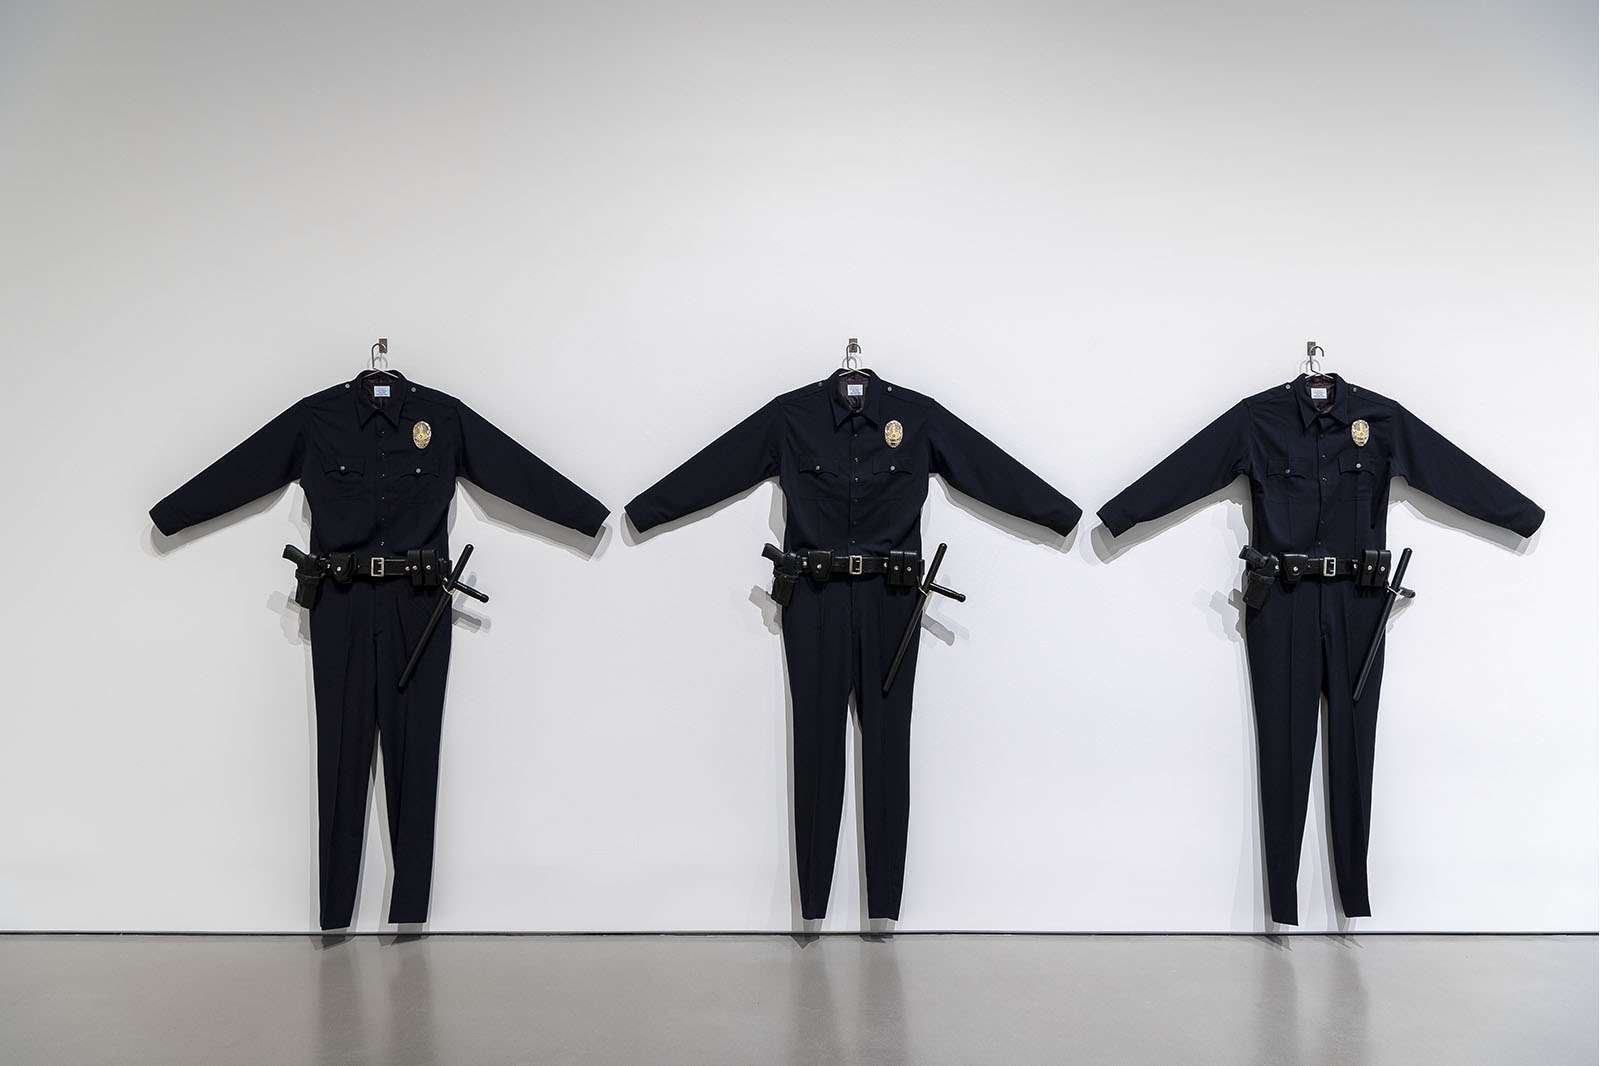 Chris Burden, L.A.P.D. Uniforms, 1993. Courtesy the Chris Burden Estate. © Chris Burden/Licensed by the Chris Burden Estate and Artists Rights Society (ARS), New York. Photo by Nash Baker